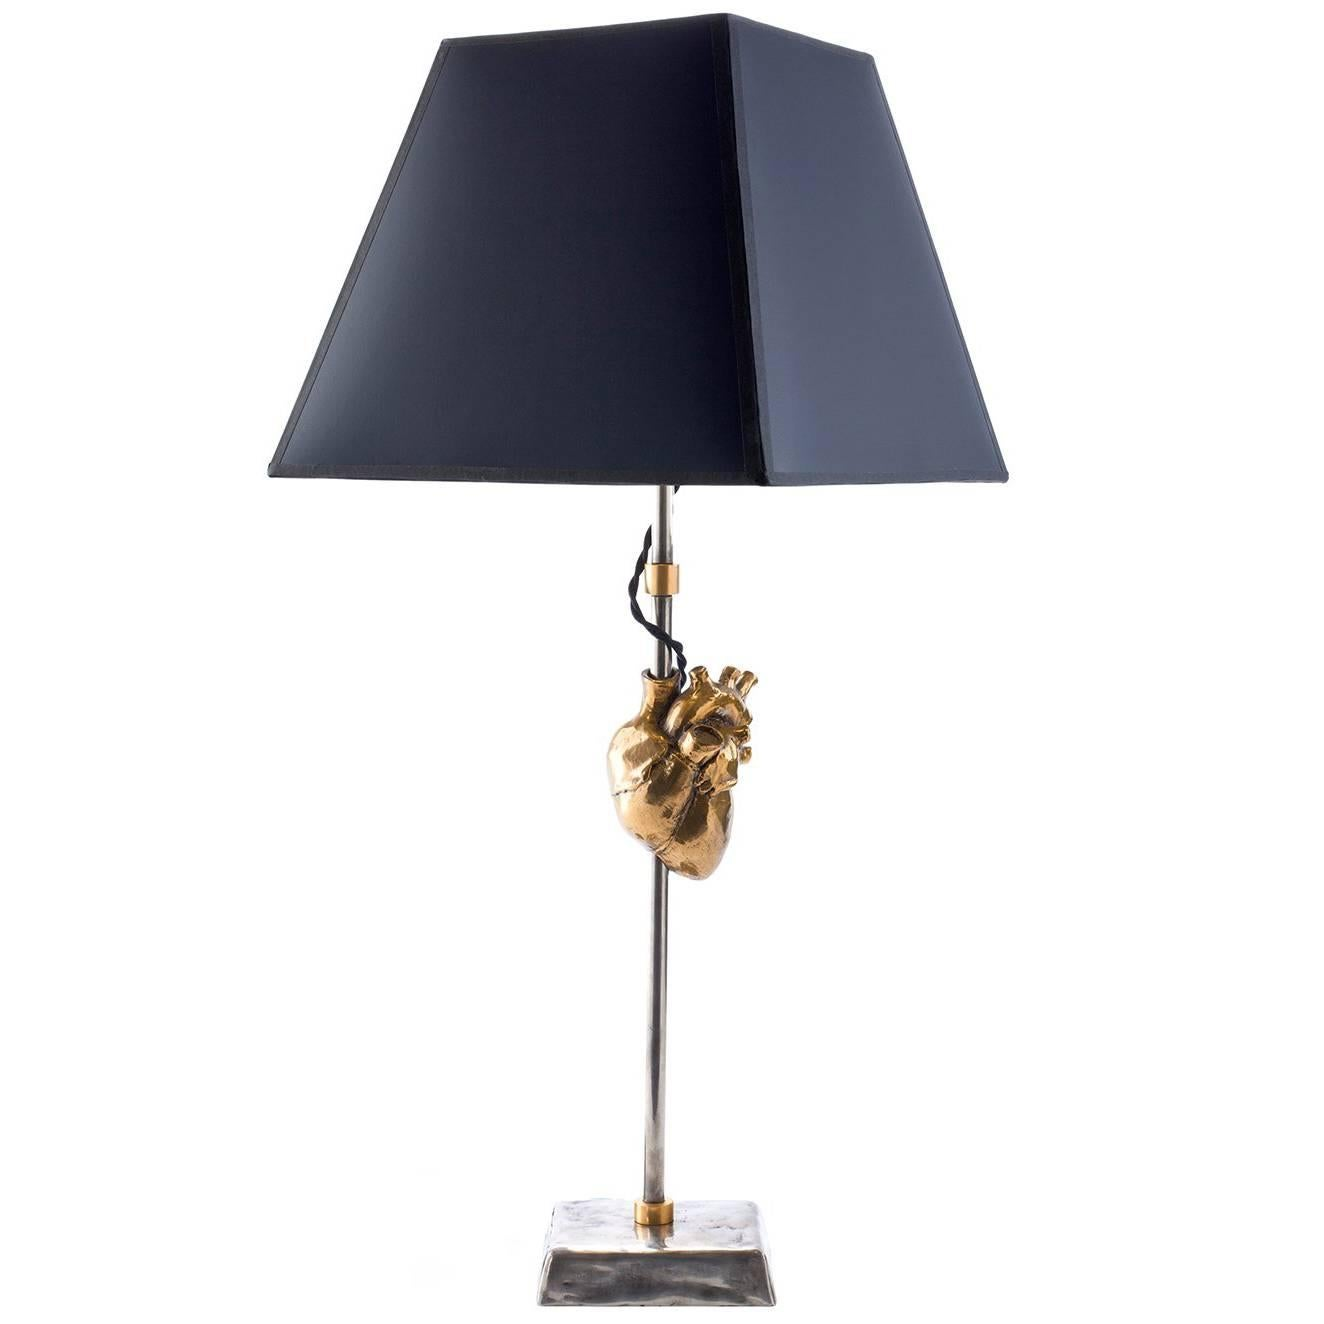 Contemporary Sculptural Table Lamp with Cast Bronze Heart by Vivian Carbonell